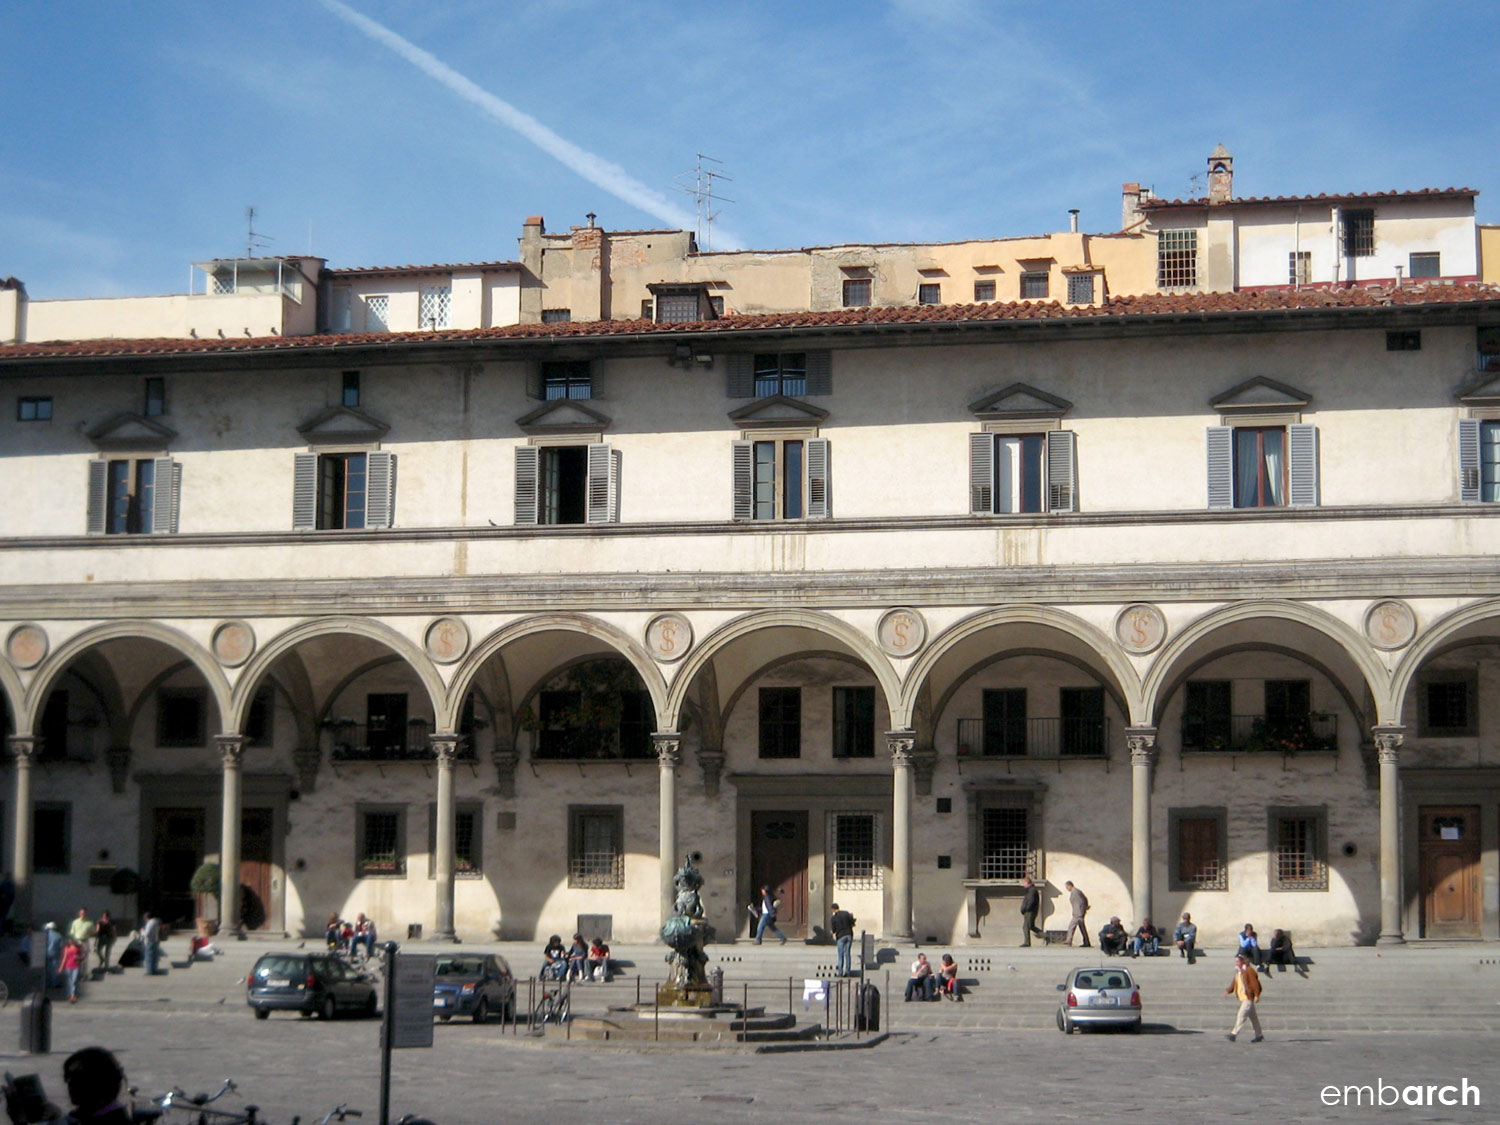 Hospital of the Innocents - exterior view from piazza.